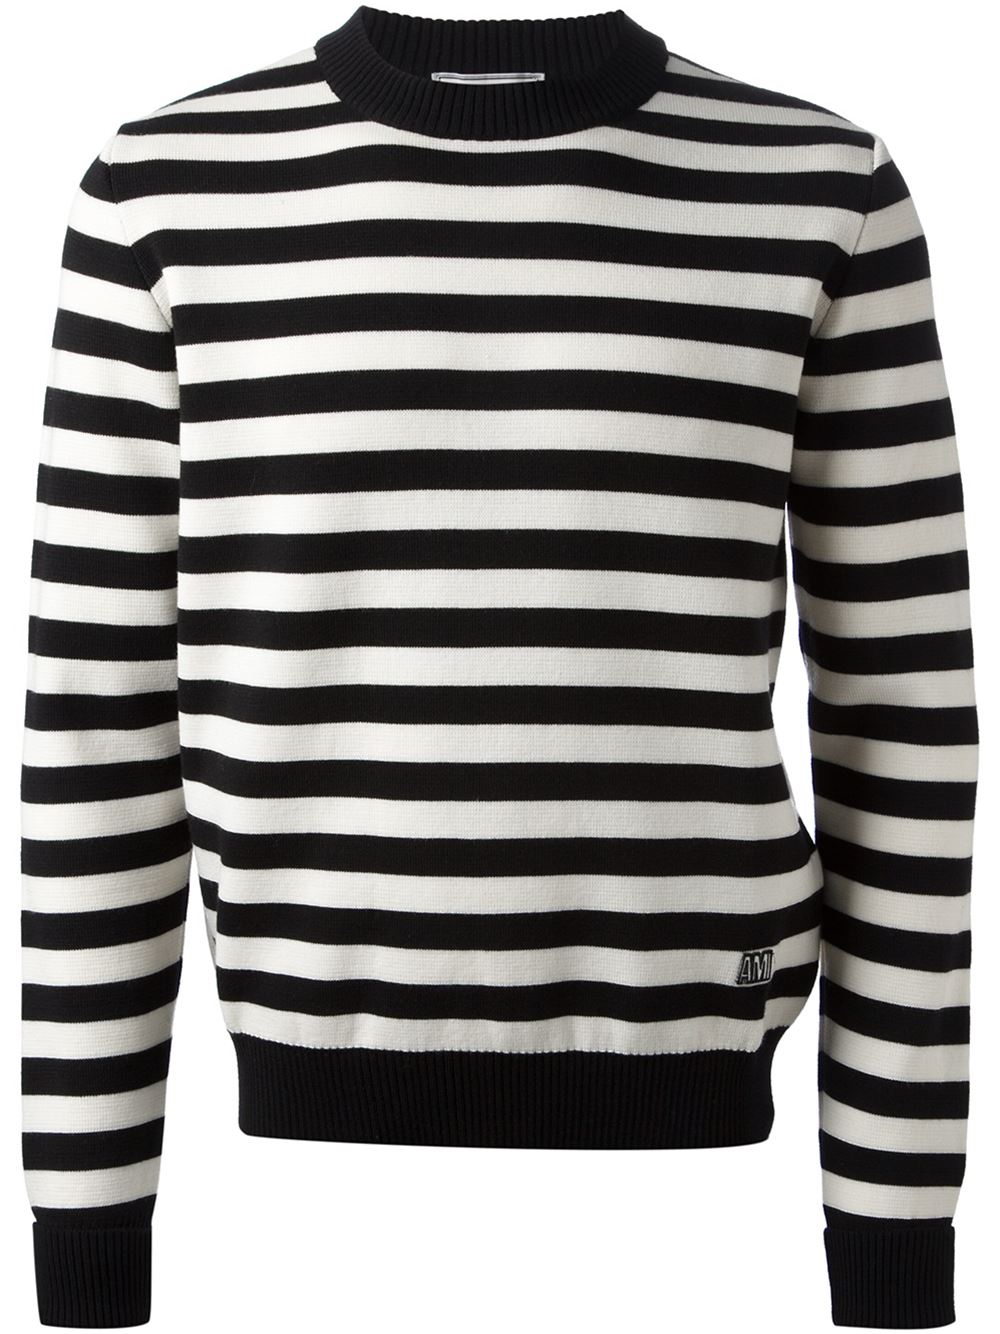 Find black and white striped sweater at ShopStyle. Shop the latest collection of black and white striped sweater from the most popular stores - all in.